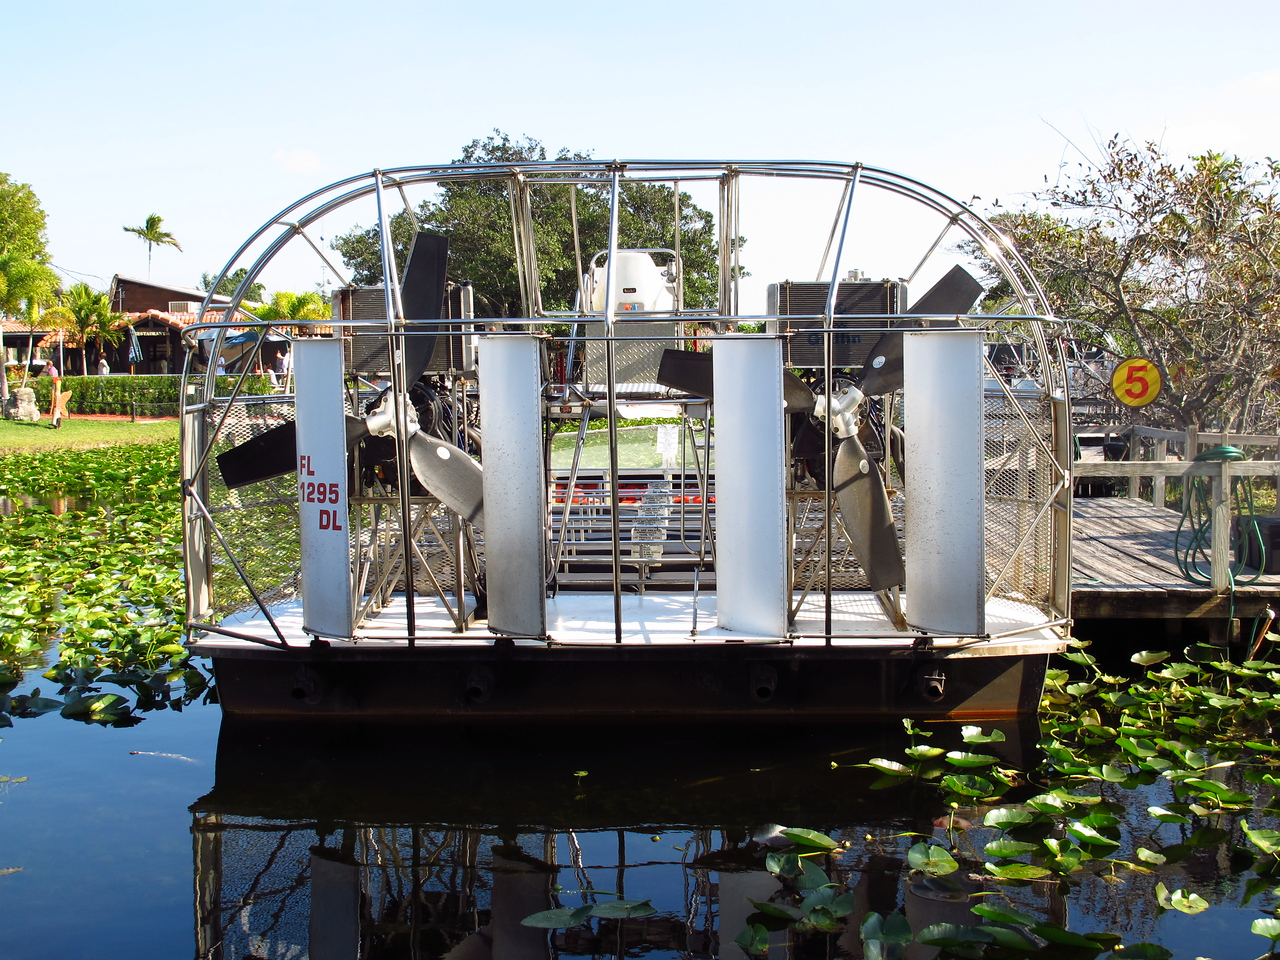 Now here is some serious power with twin engines on an airboat :)